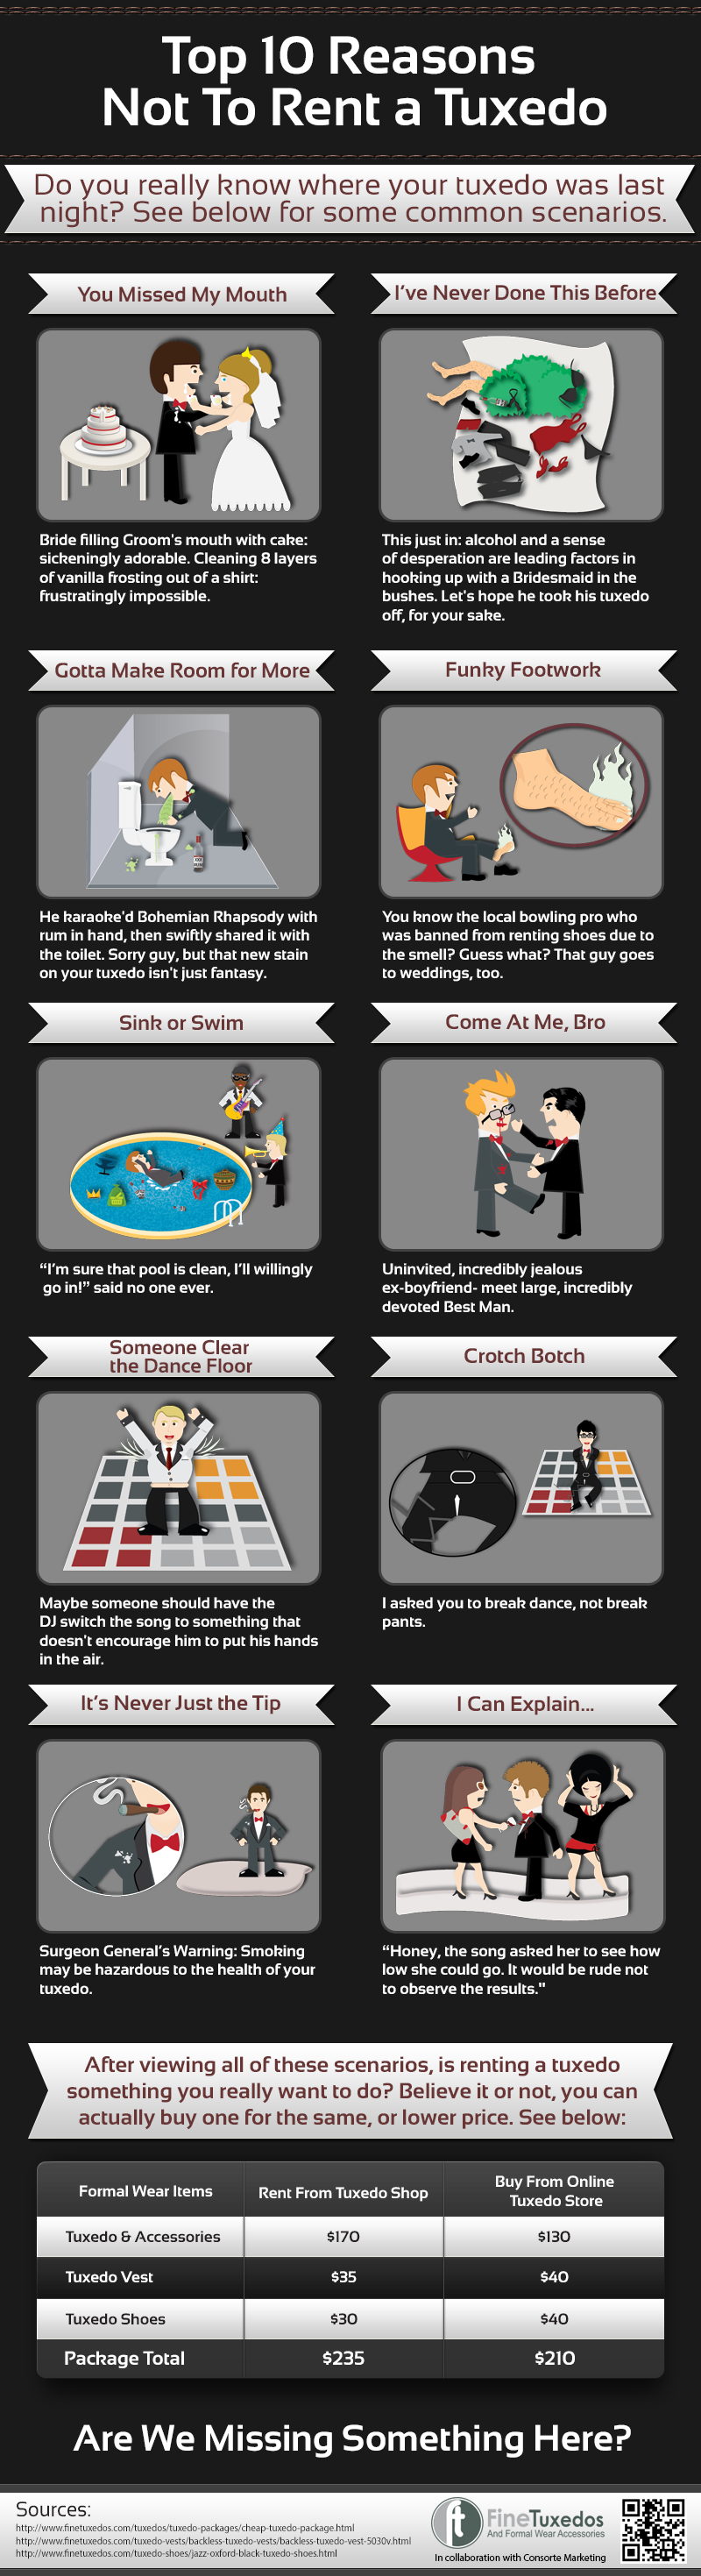 Top Ten Reasons Not to Rent a Tuxedo (Infographic)